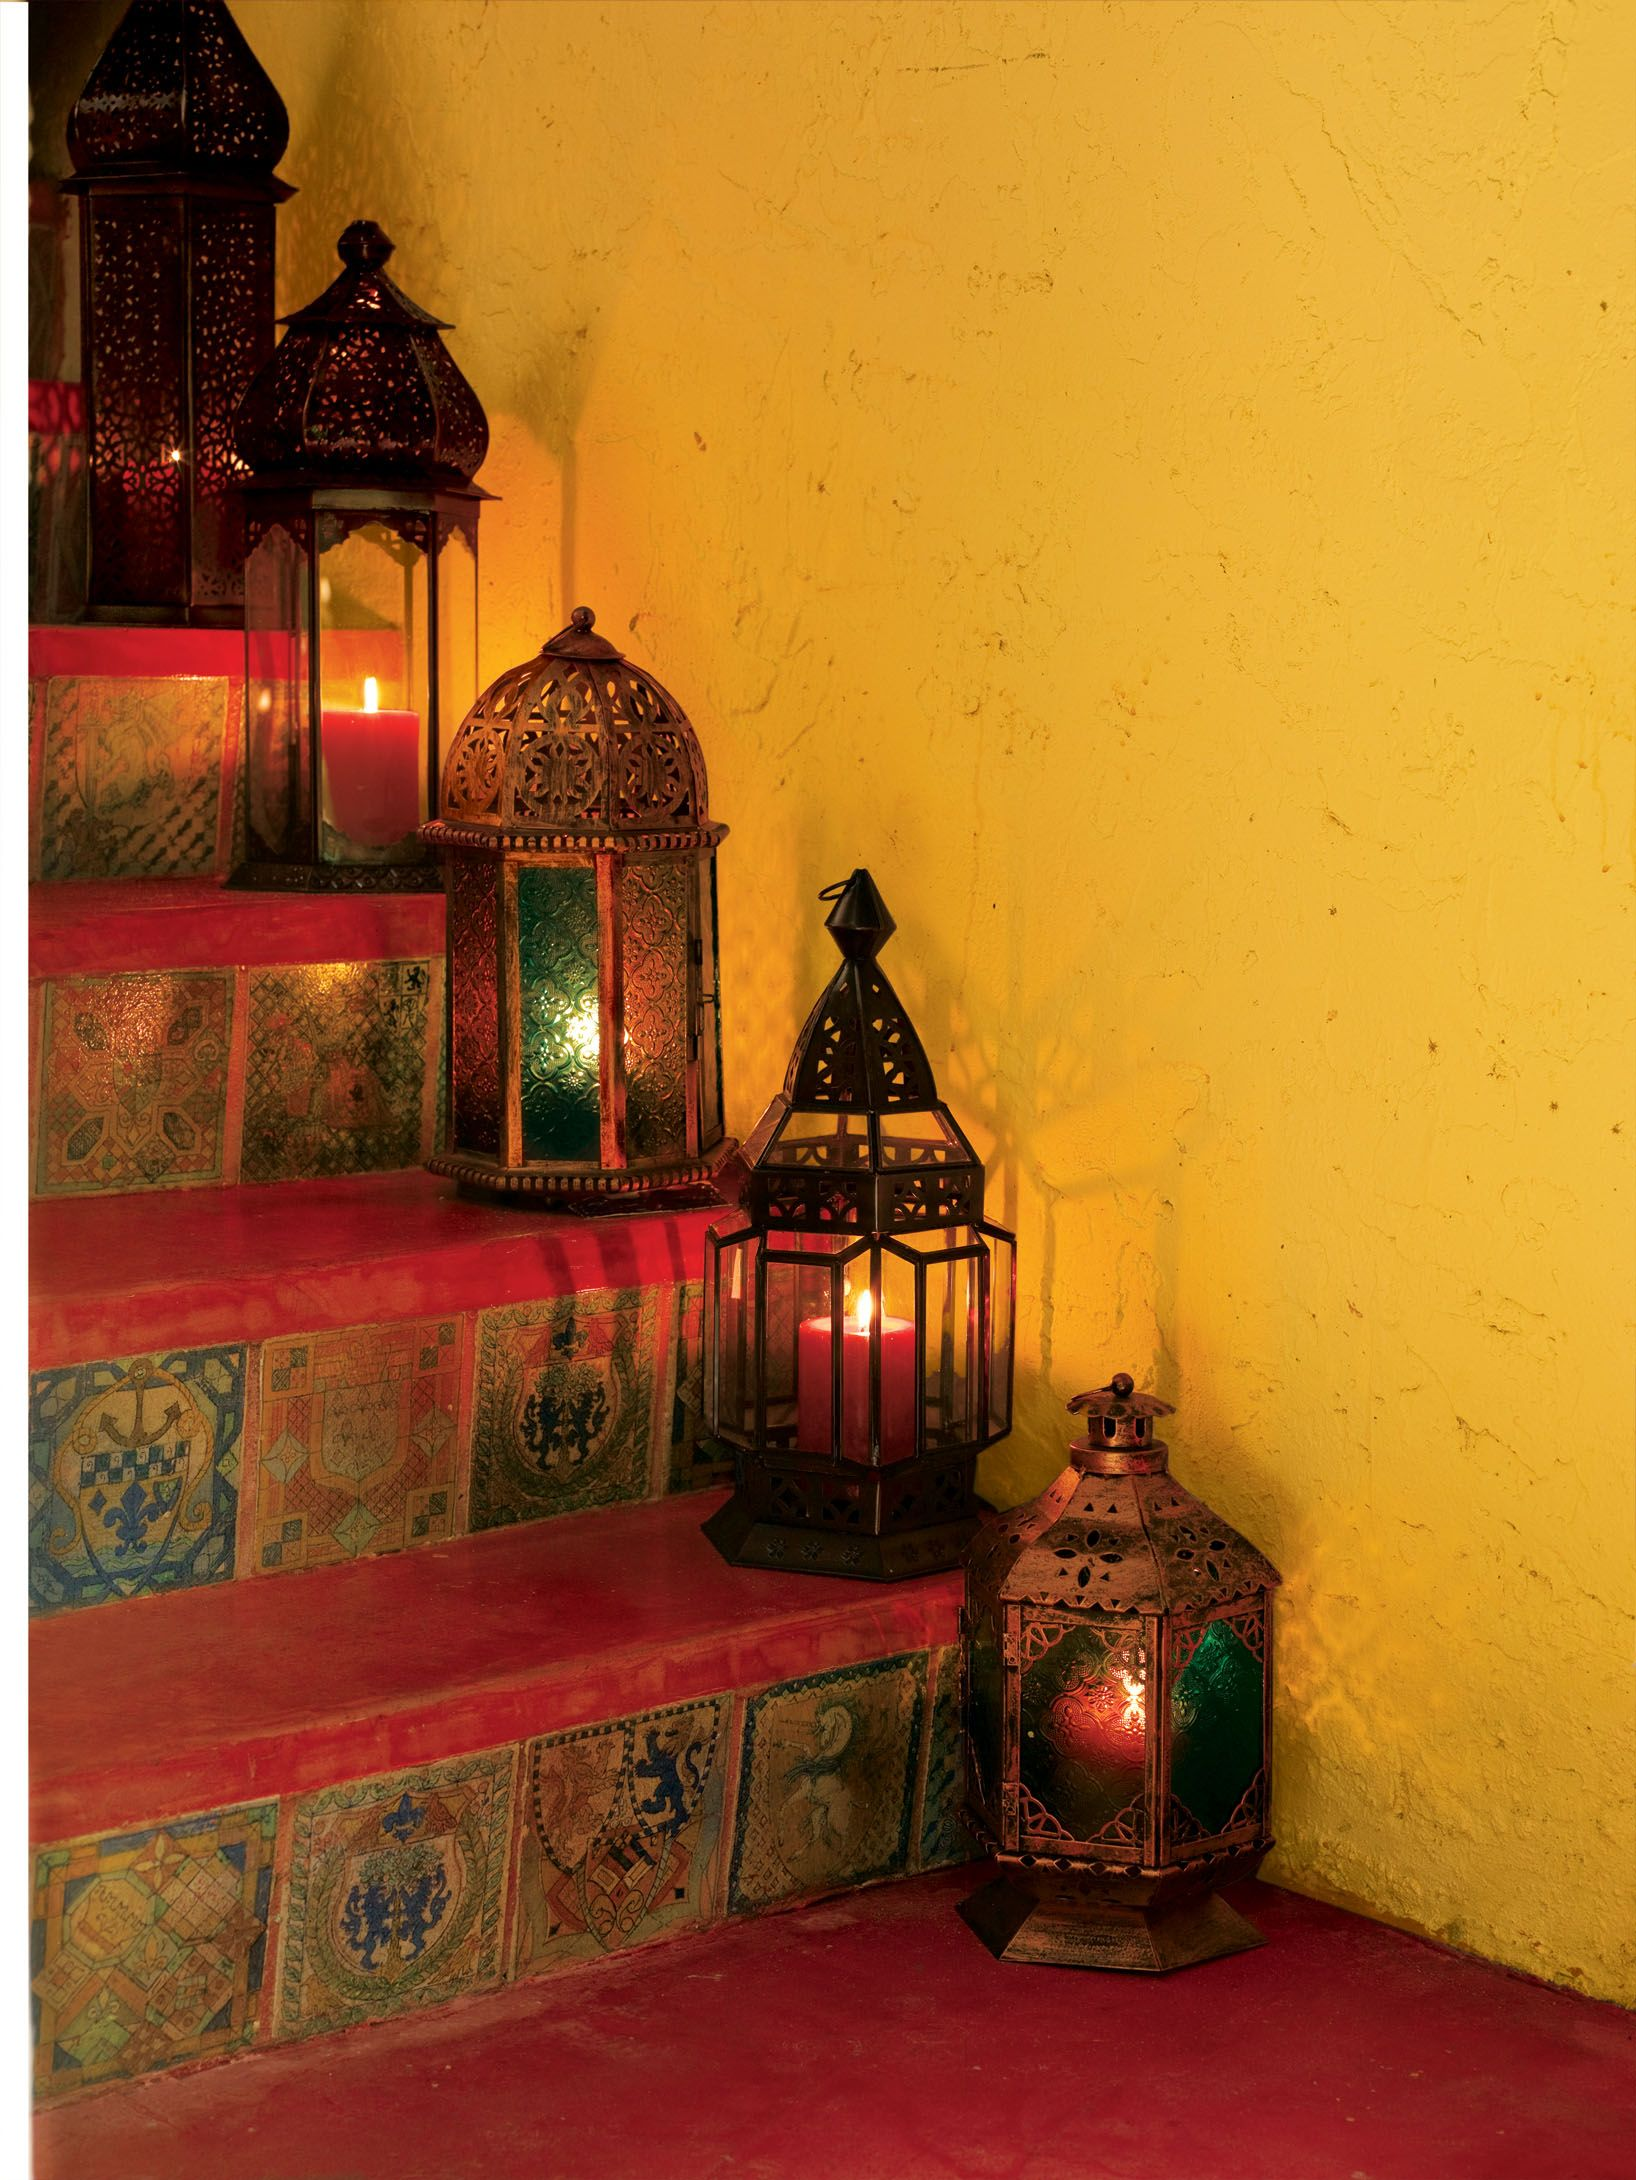 Party decoration ideas moroccan metal lantern - Do These Worldly Lanterns Remind You Of Your Decorating Styles Find Out What Type Of